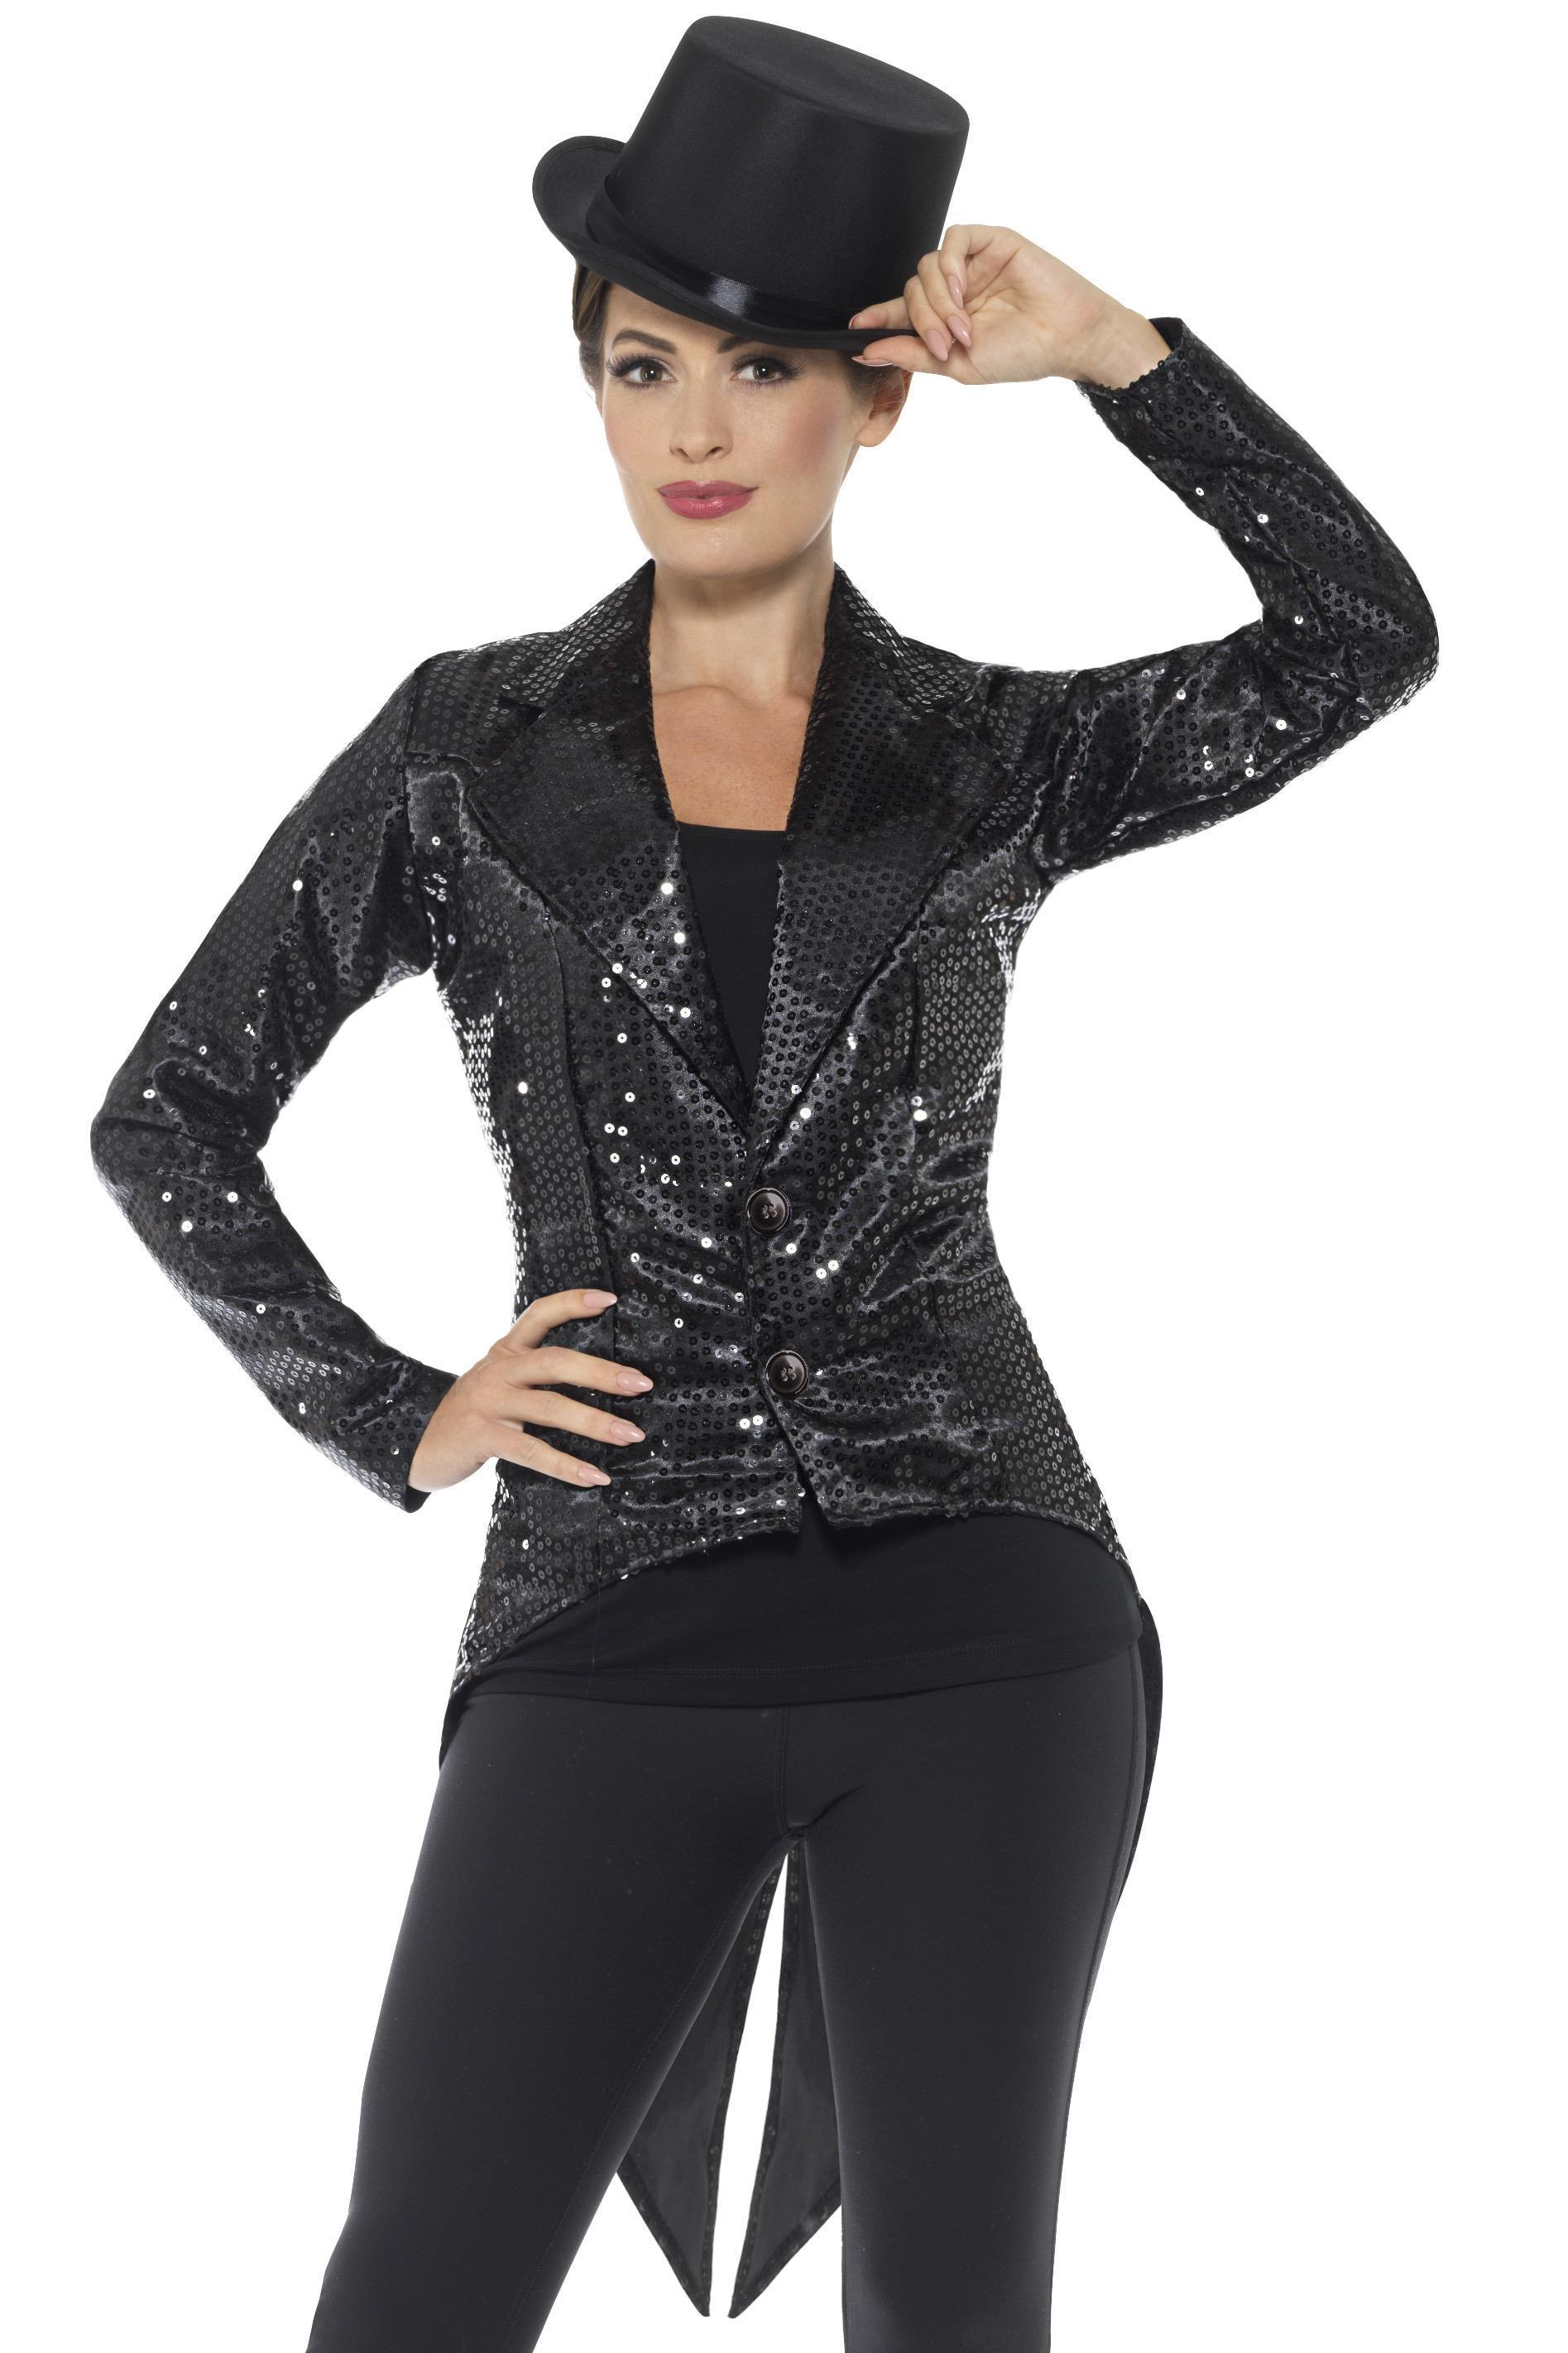 Sequin Tailcoat Jacket Ladies Black